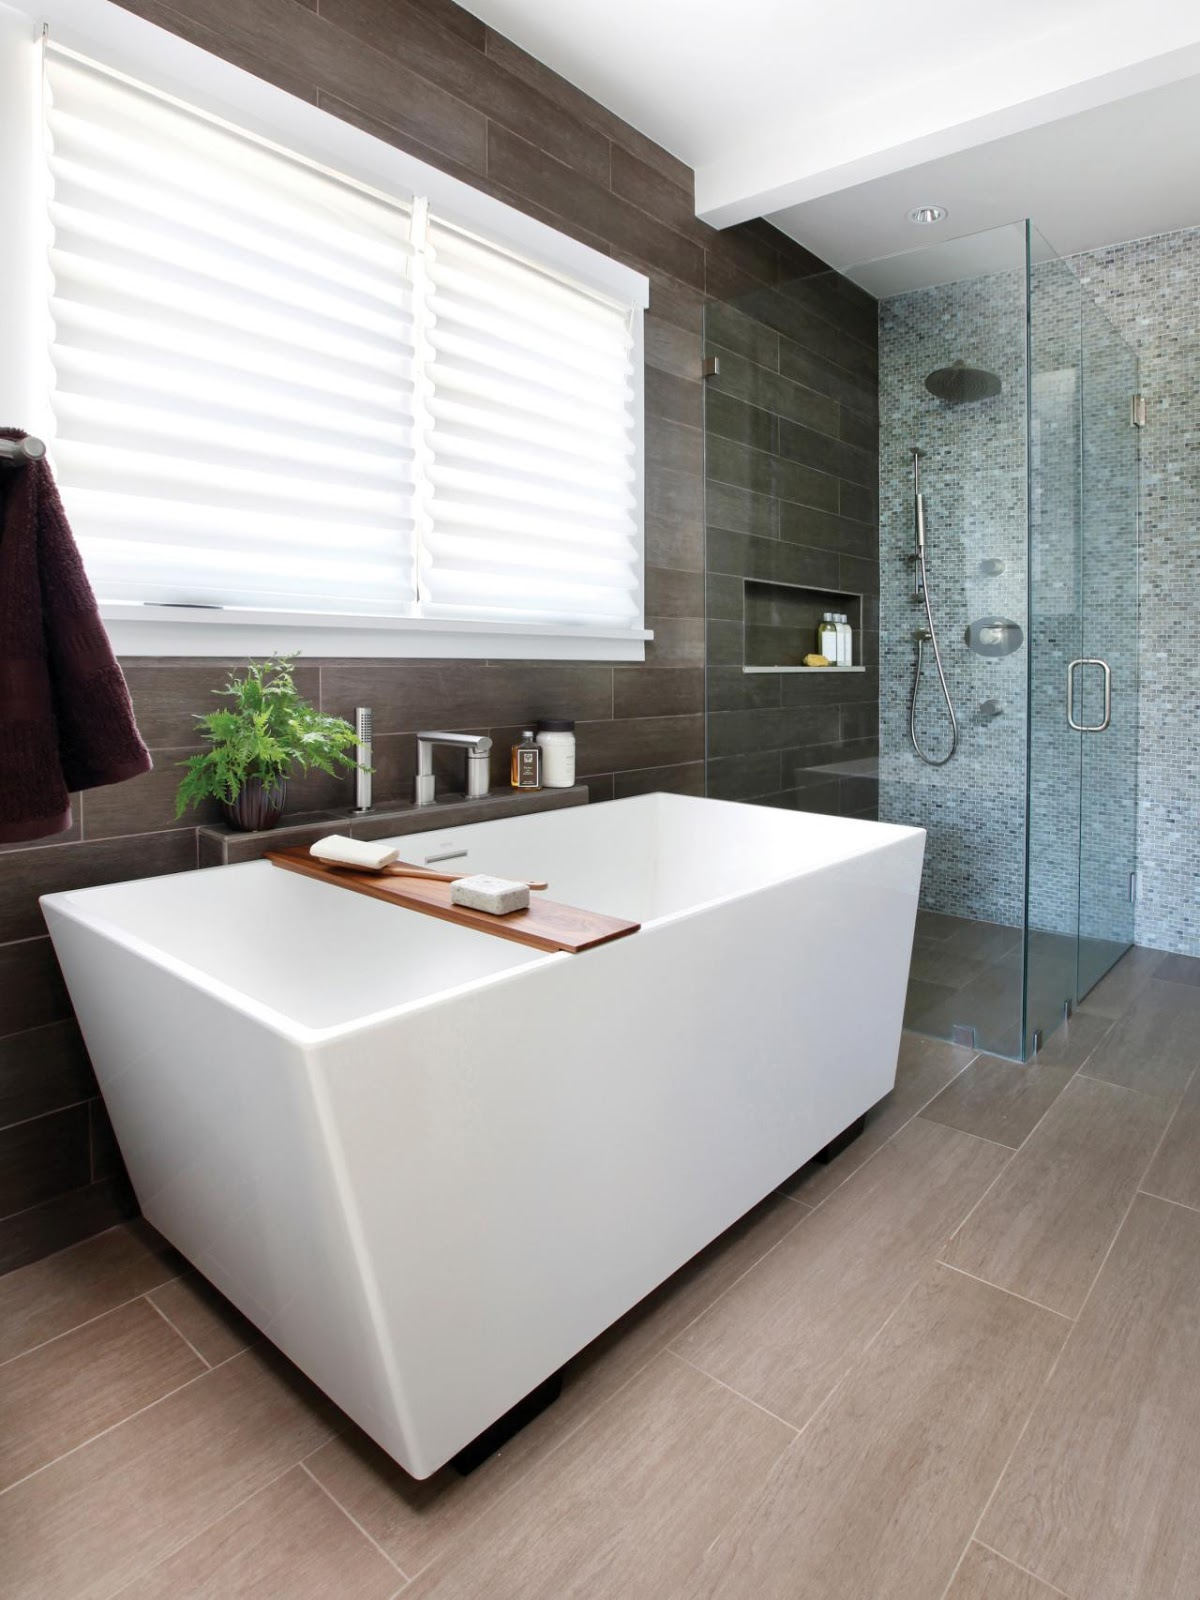 30 modern bathroom design ideas for your private heaven - Bathroom Ideas Contemporary